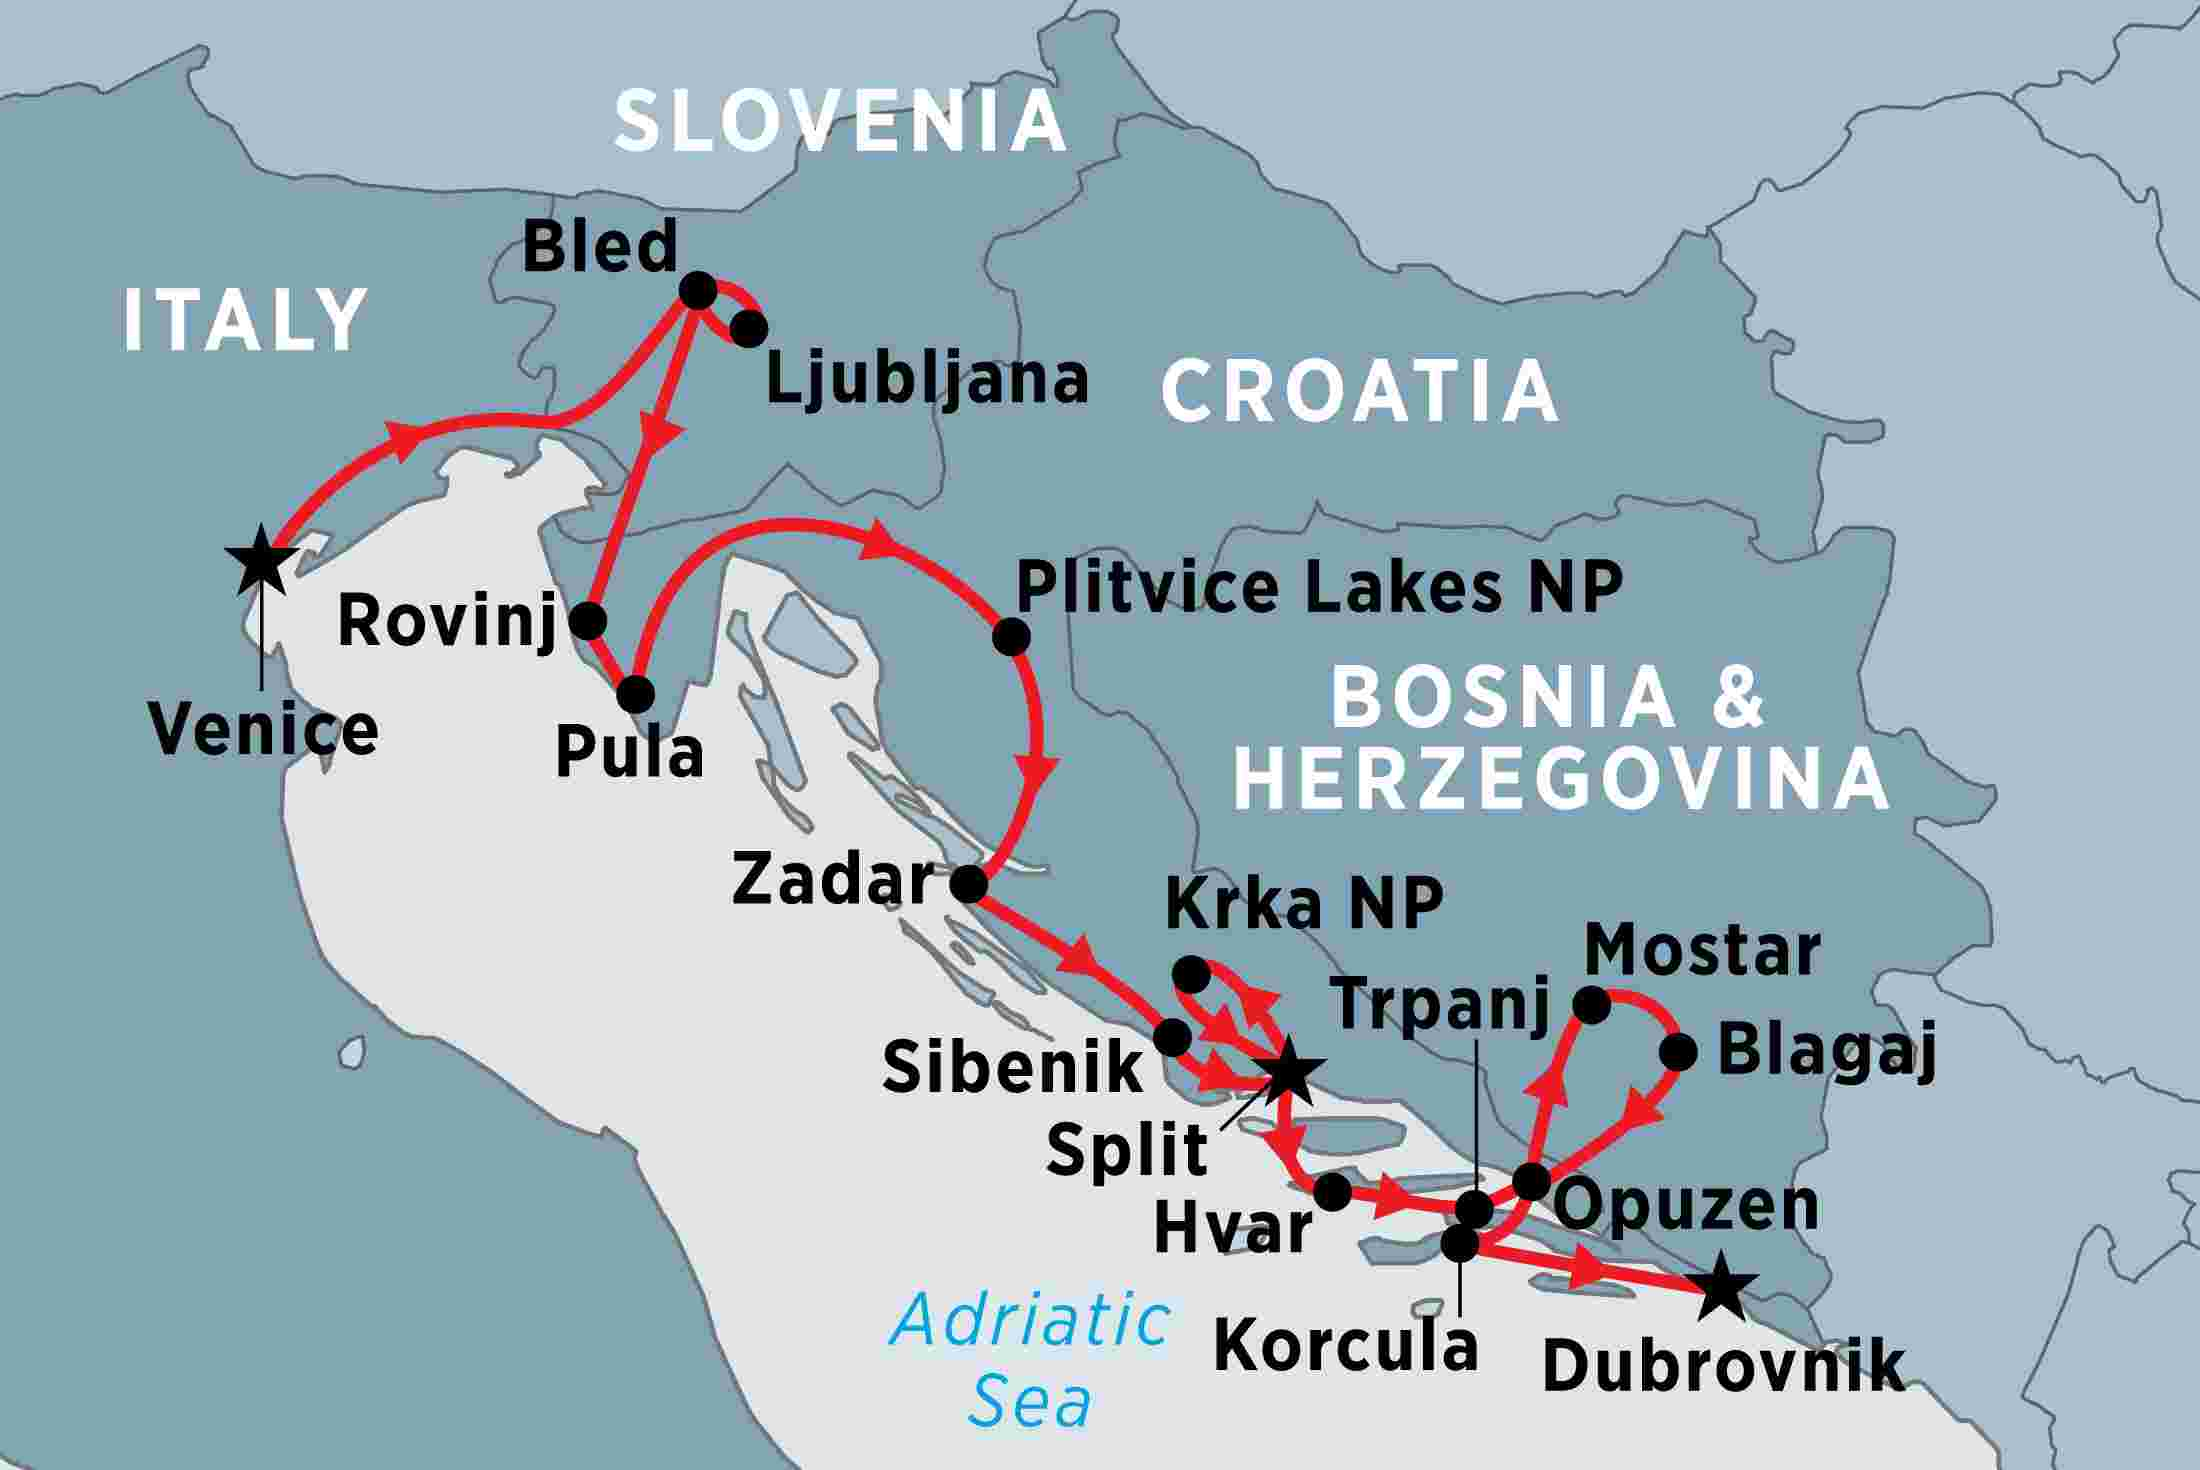 map of slovenia croatia by land and sea including bosnia and herzegovina croatia